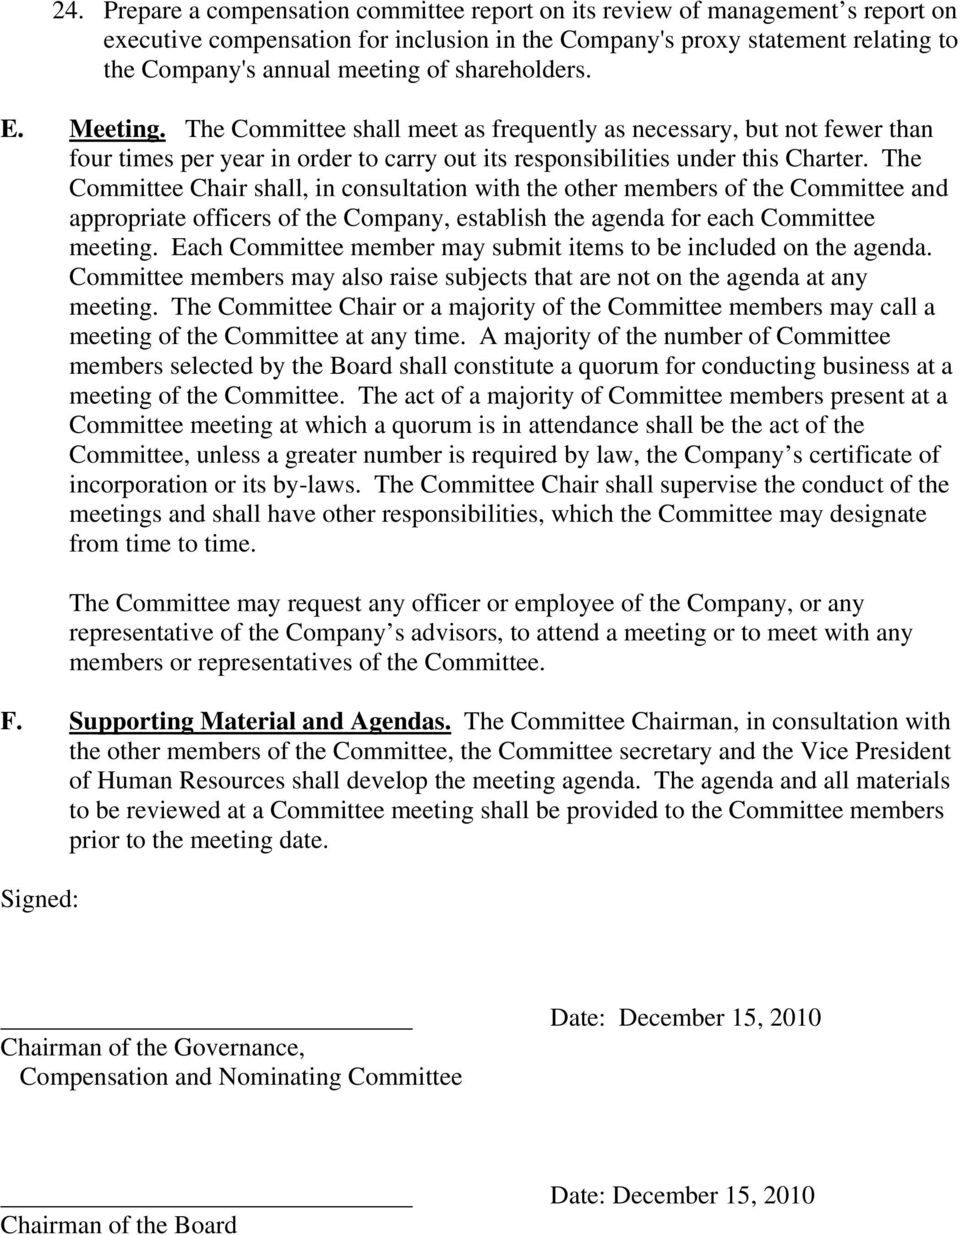 The Committee Chair shall, in consultation with the other members of the Committee and appropriate officers of the Company, establish the agenda for each Committee meeting.